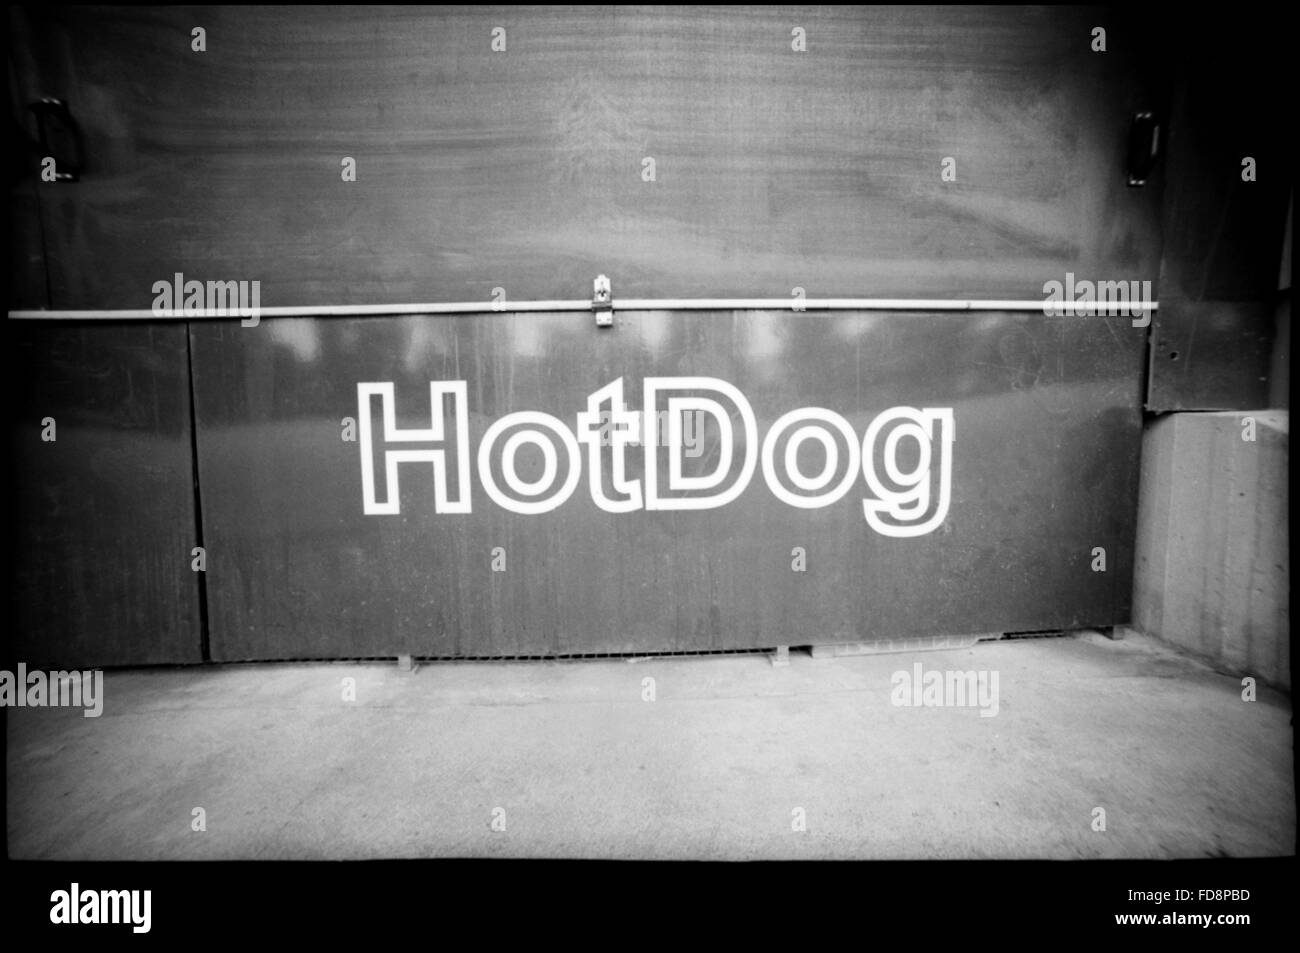 Hotdog Written On Wall - Stock Image